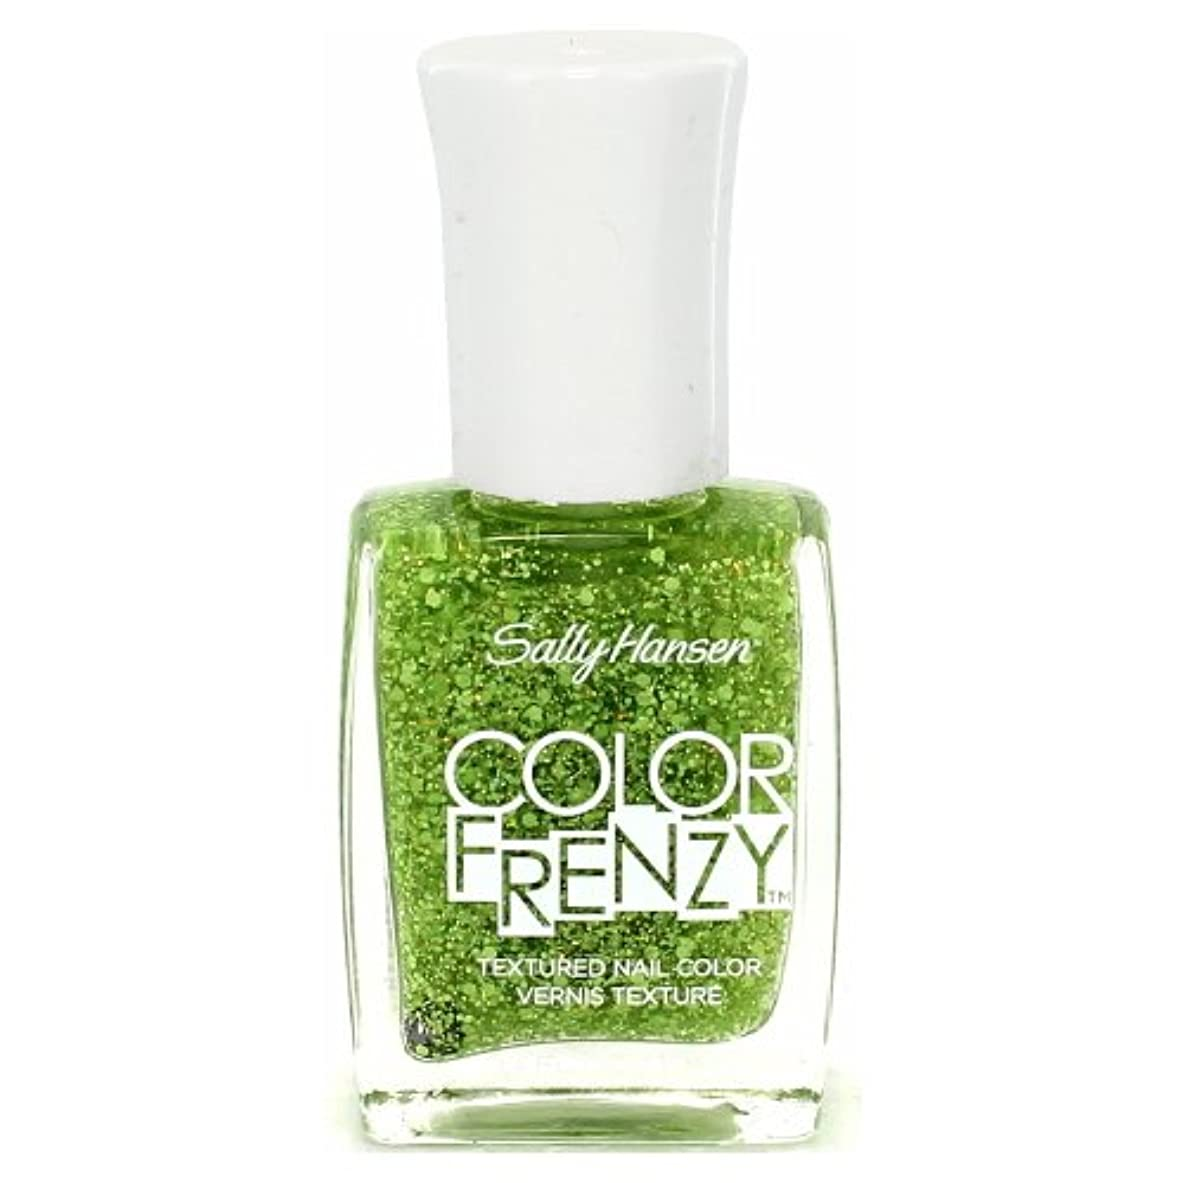 ピアニストリム受動的(6 Pack) SALLY HANSEN Color Frenzy Textured Nail Color - Green Machine (並行輸入品)